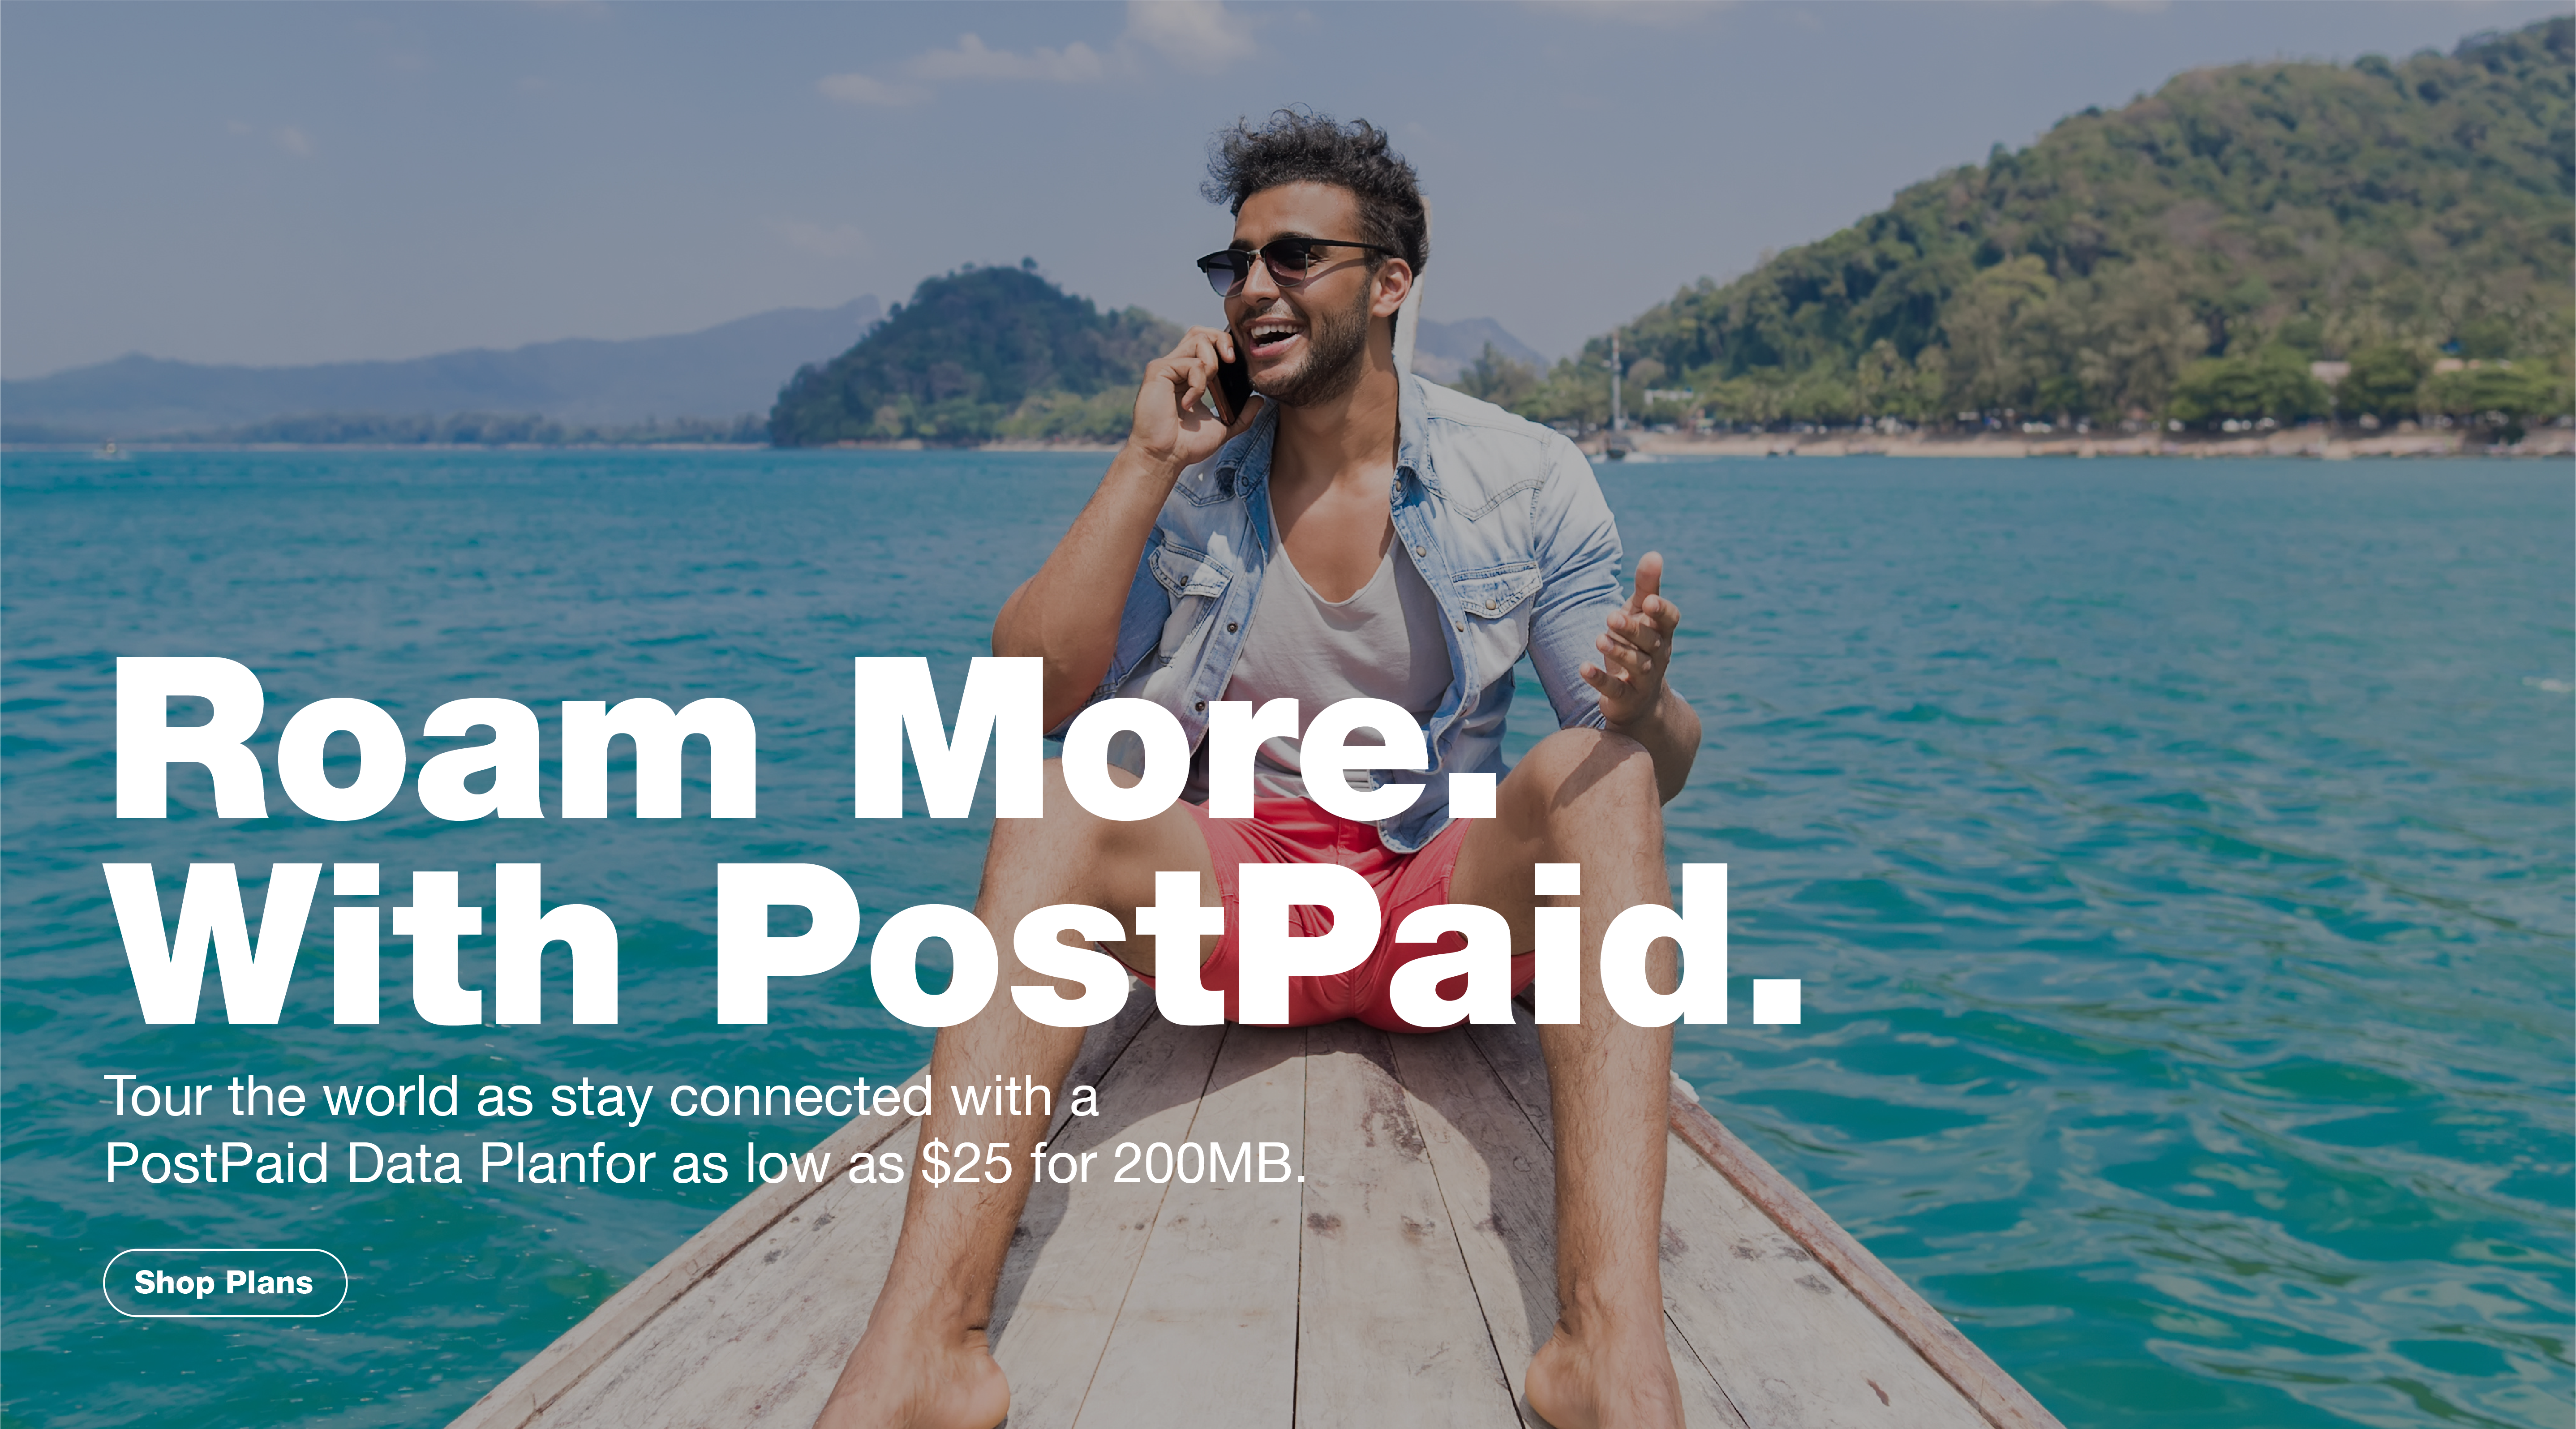 Roam More with PostPaid